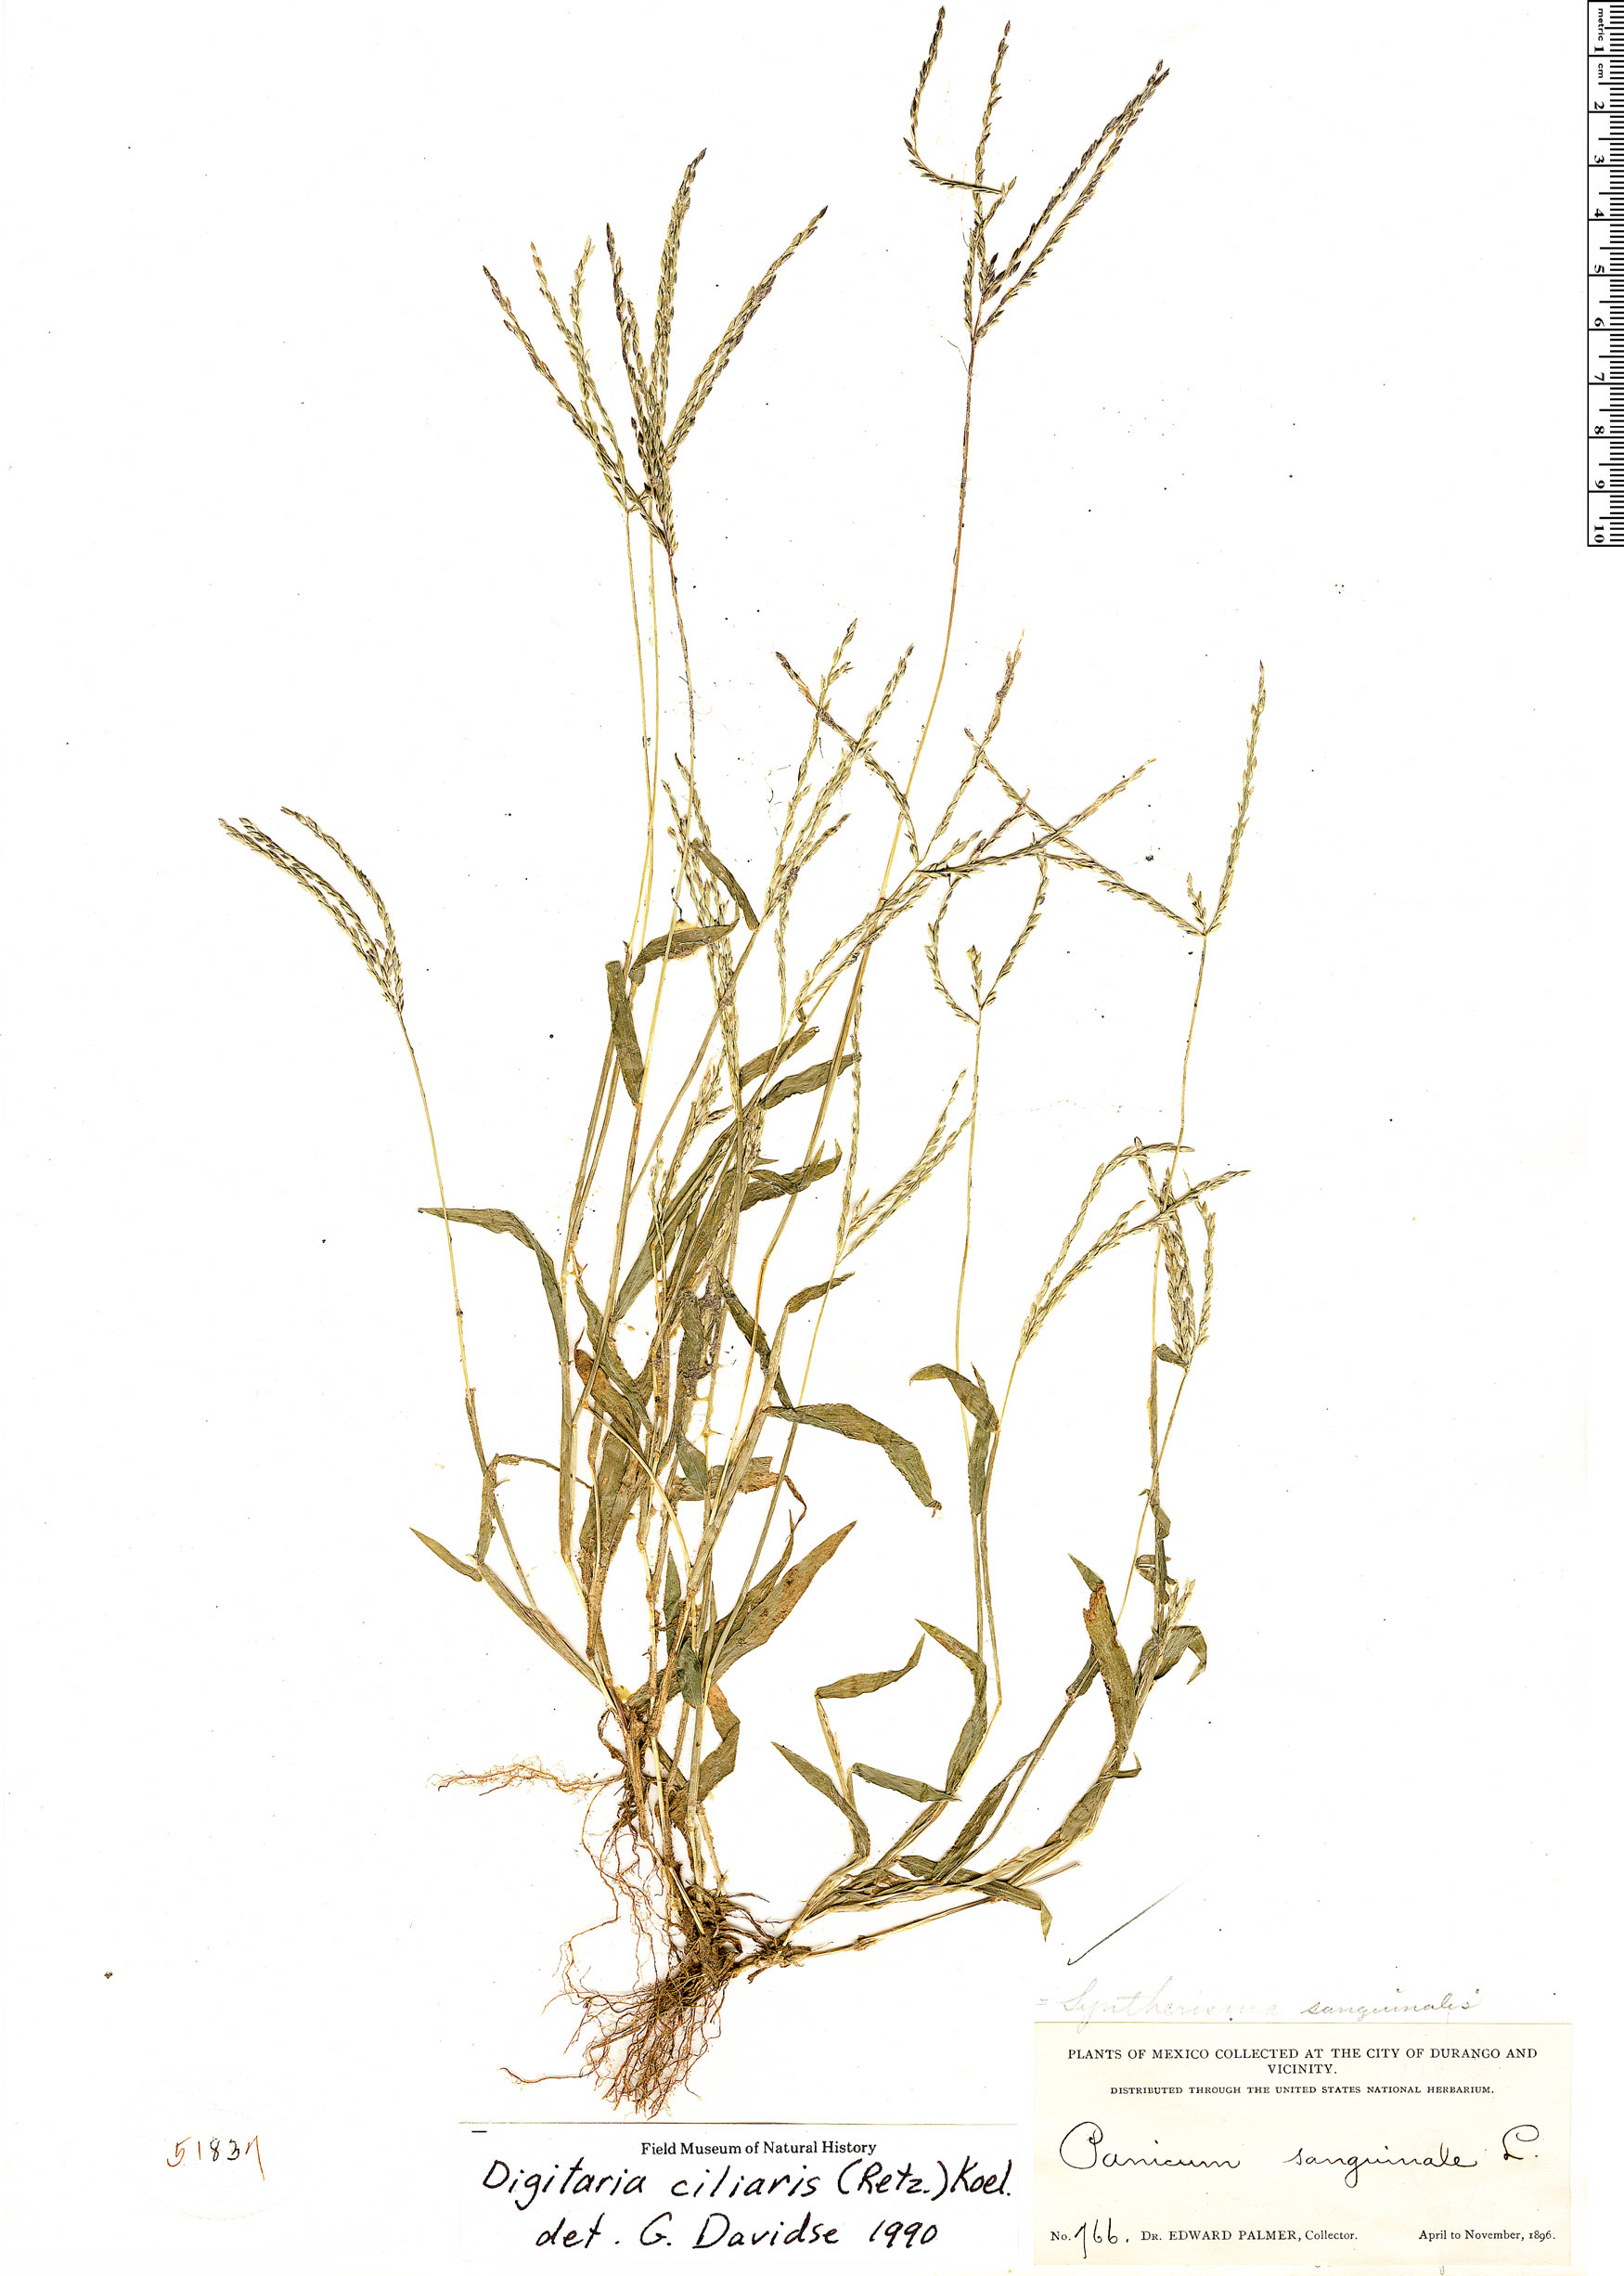 Specimen: Digitaria ciliaris